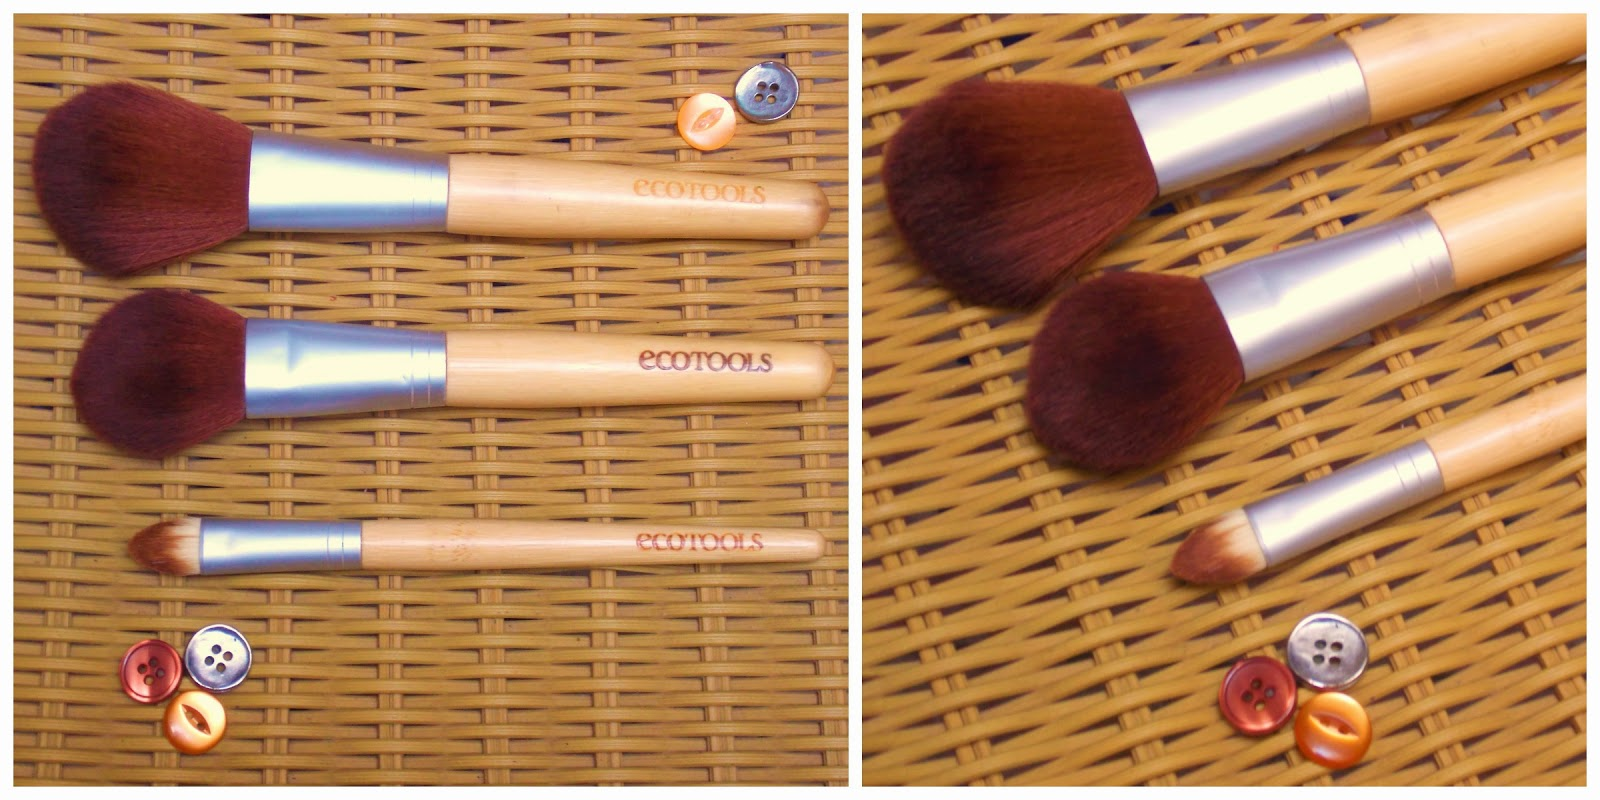 Beauty, Cruelty Free Beauty, Ecotools, make up brush collection, make up brushes, my pure, Cruelty Free Beauty, Make Up Brushes